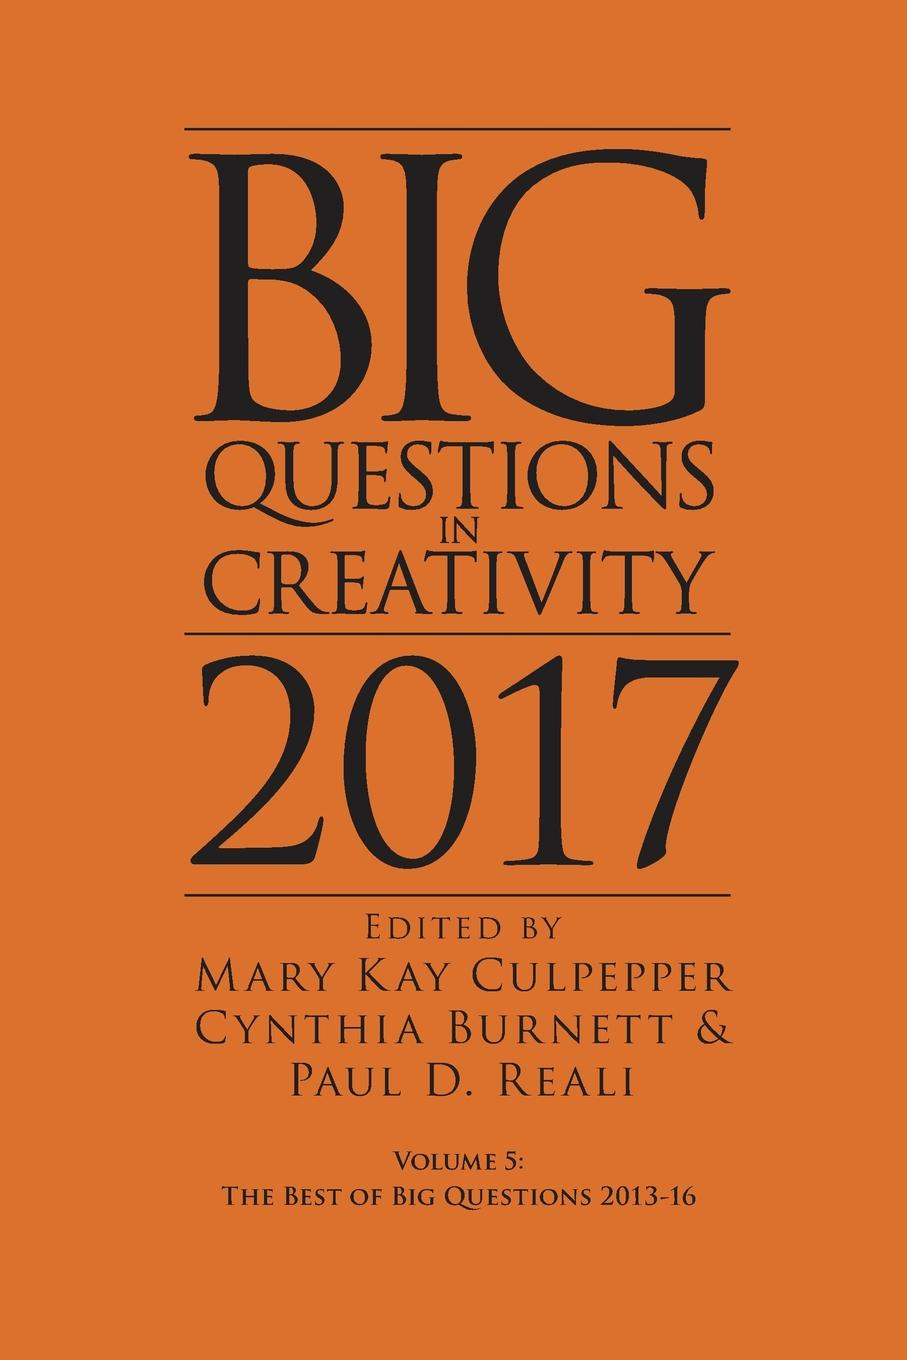 Big Questions in Creativity 2017. The Best of Big Questions 2013-16 michael roberto a unlocking creativity how to solve any problem and make the best decisions by shifting creative mindsets